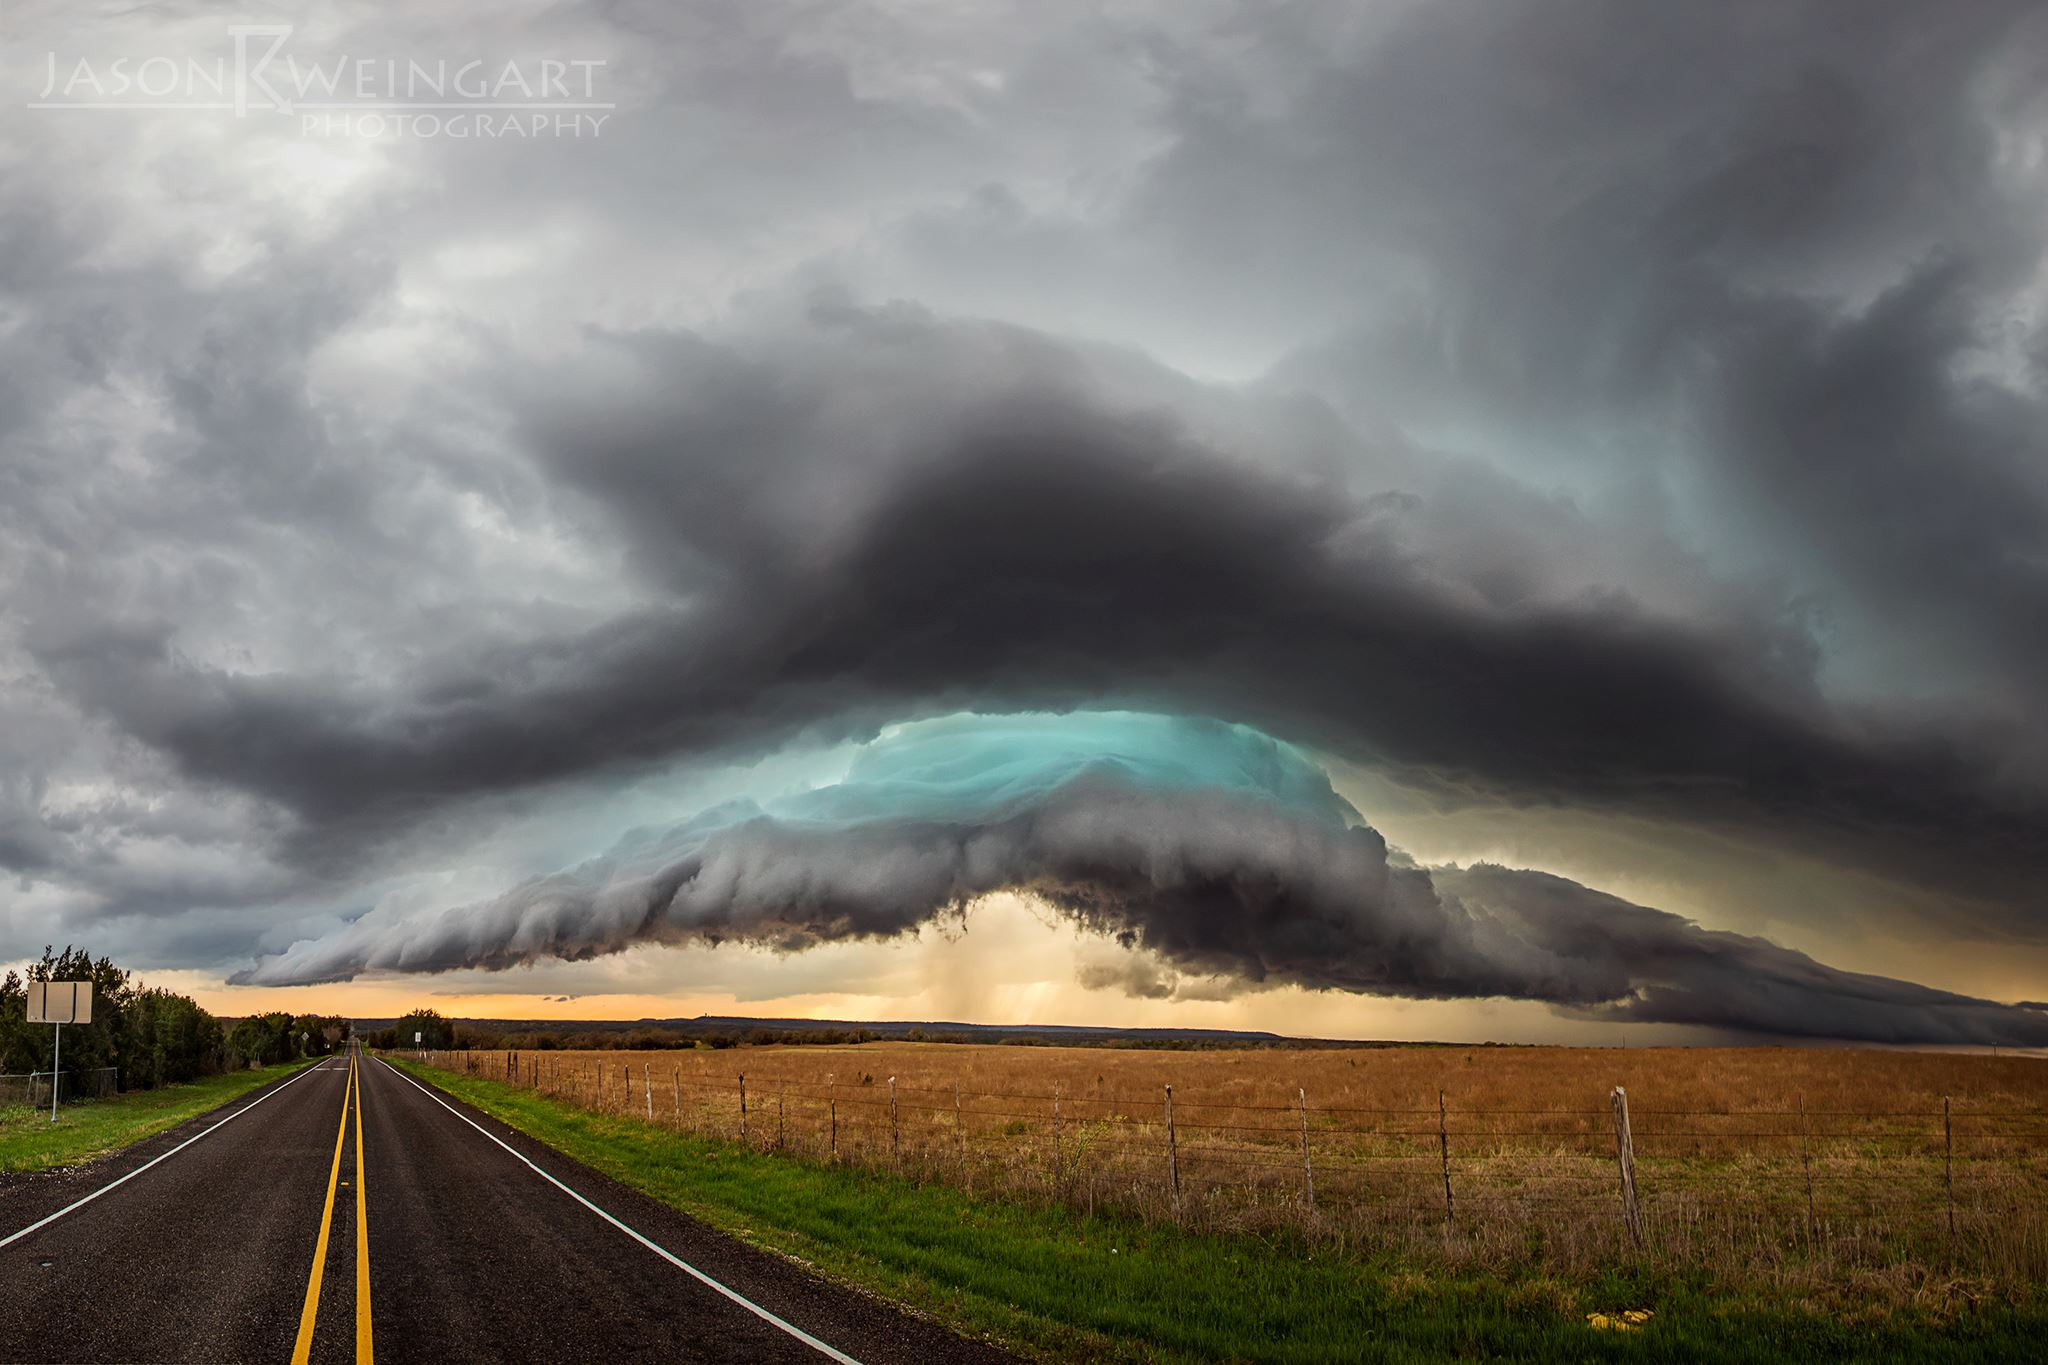 Shelf cloud over Evant, Texas.